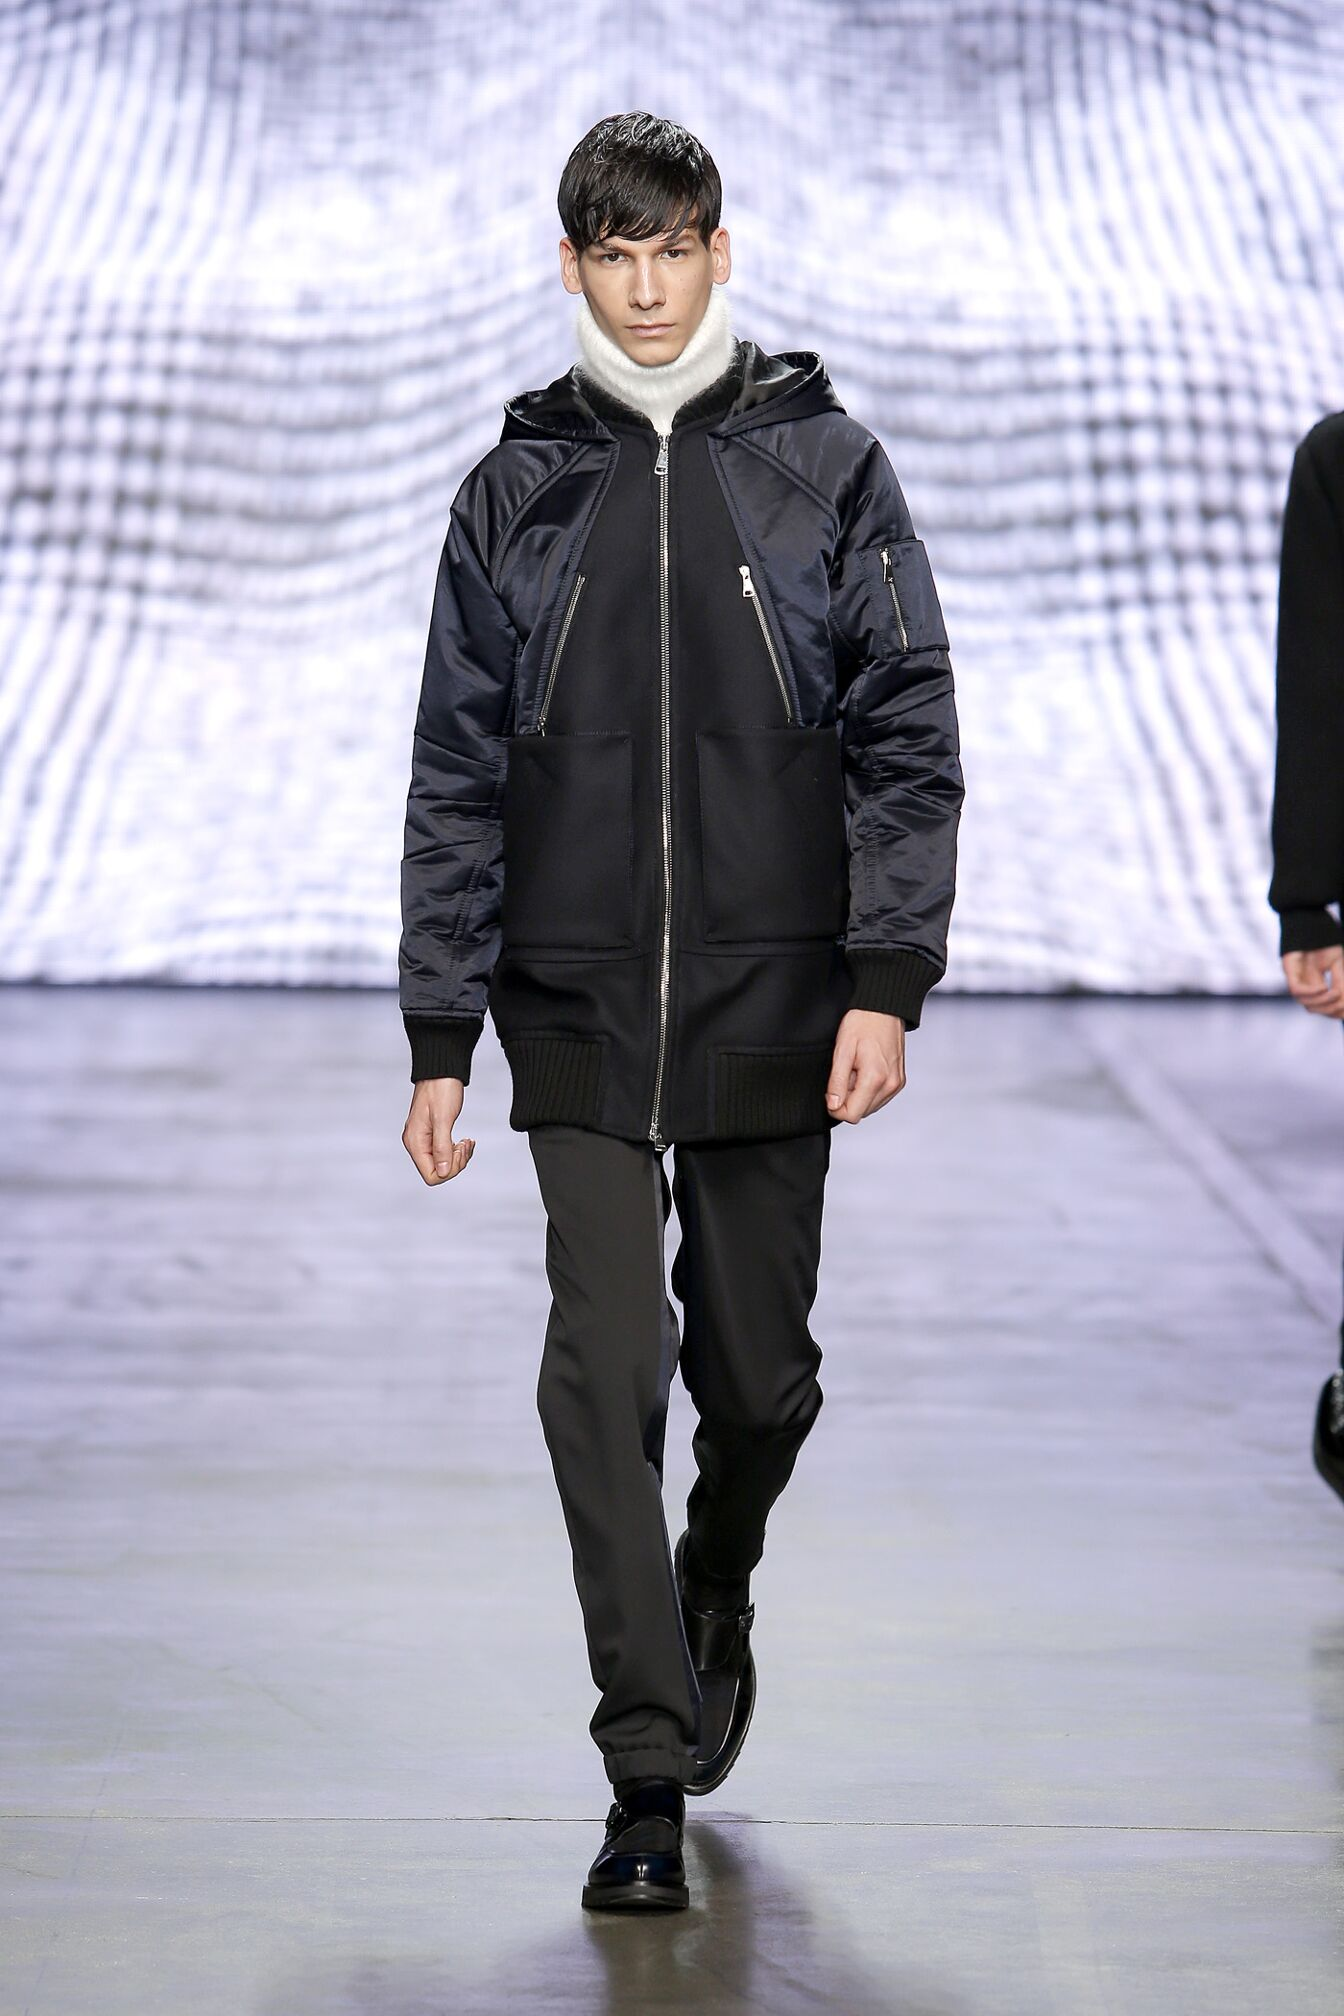 Winter Fashion Trends 2014 2015 Iceberg